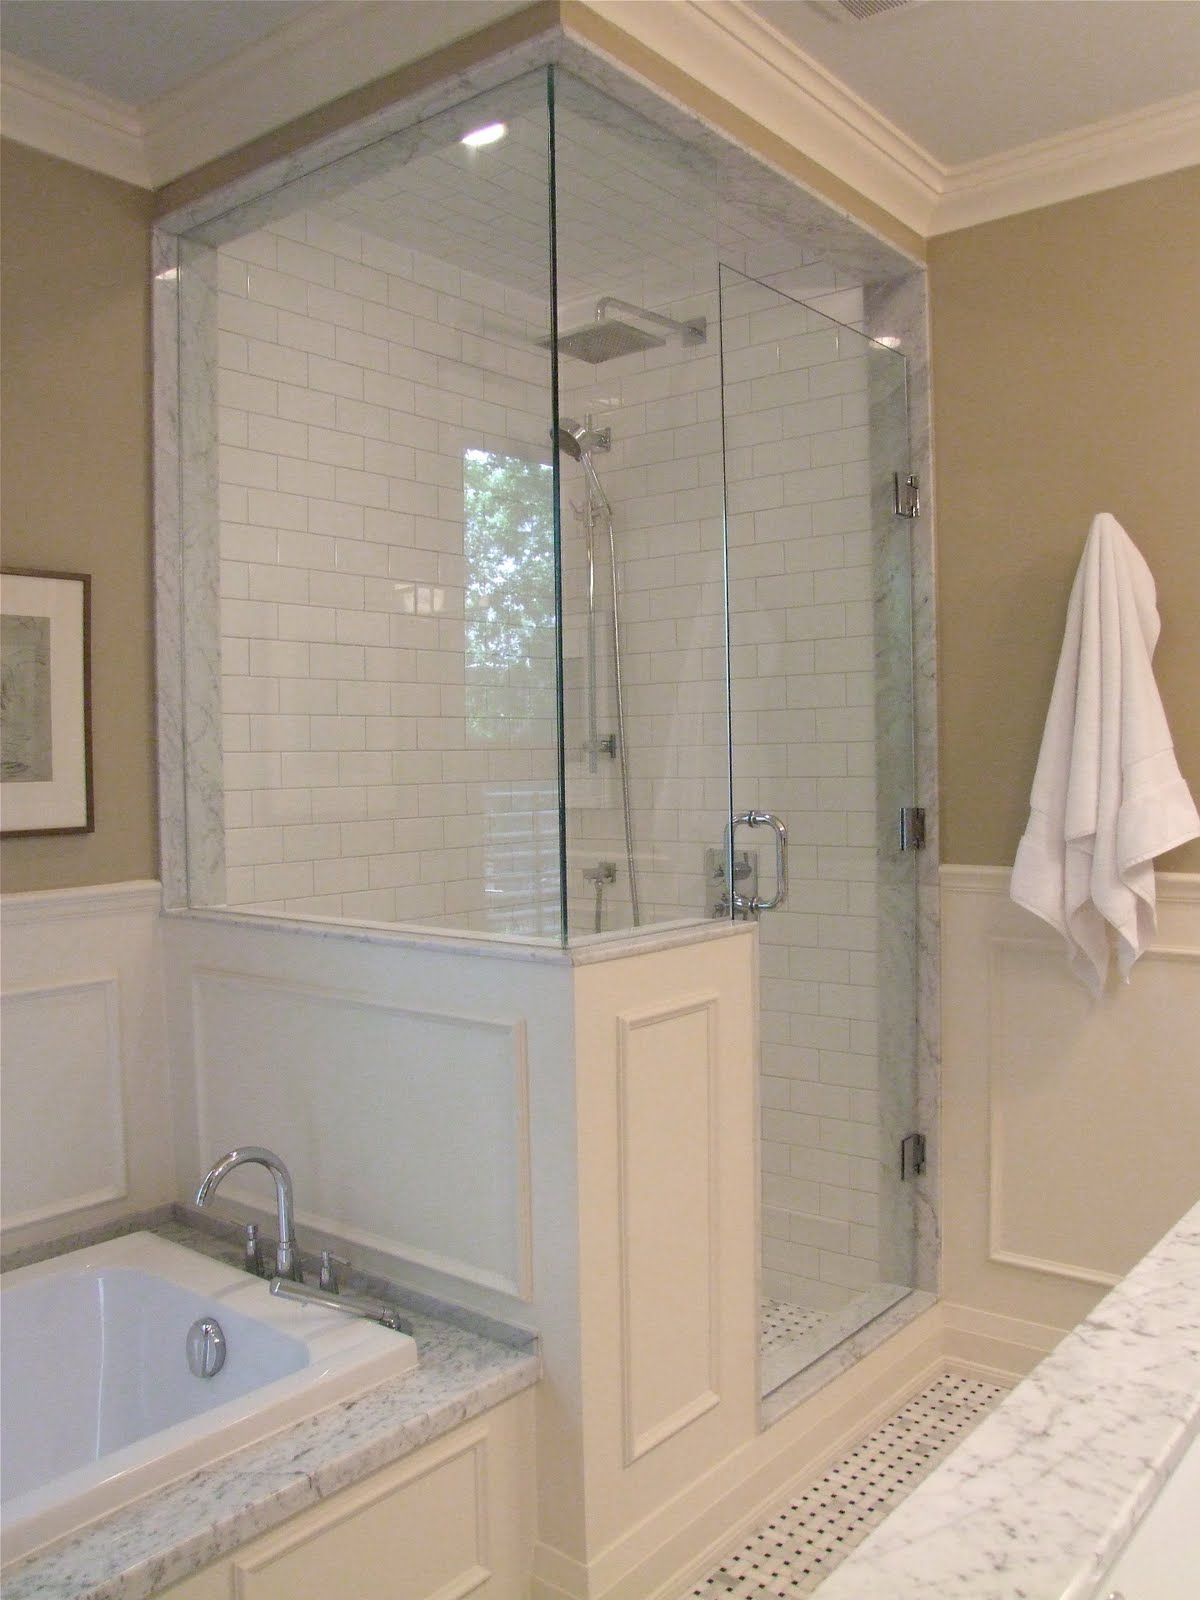 Half wall shower on pinterest small bathroom layout - How to layout a bathroom remodel ...